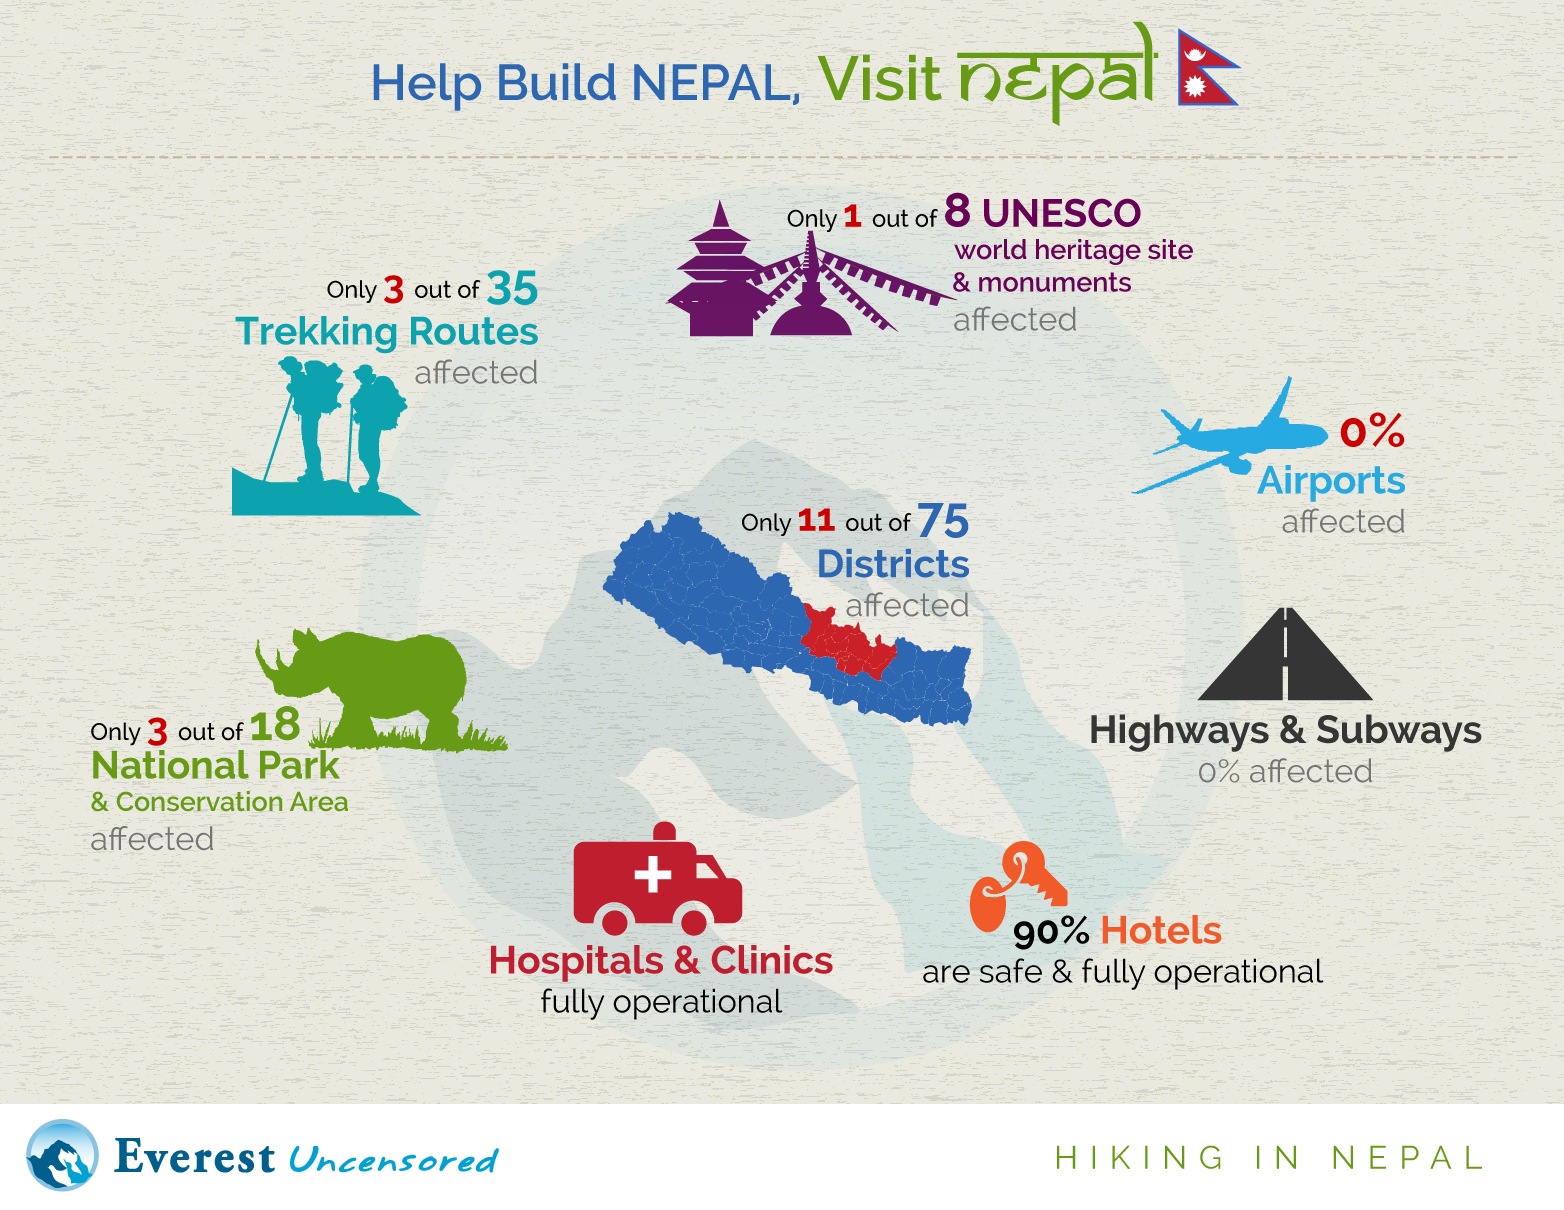 Top 7 Reasons Why Nepal Is Safe To Visit After The Earthquake